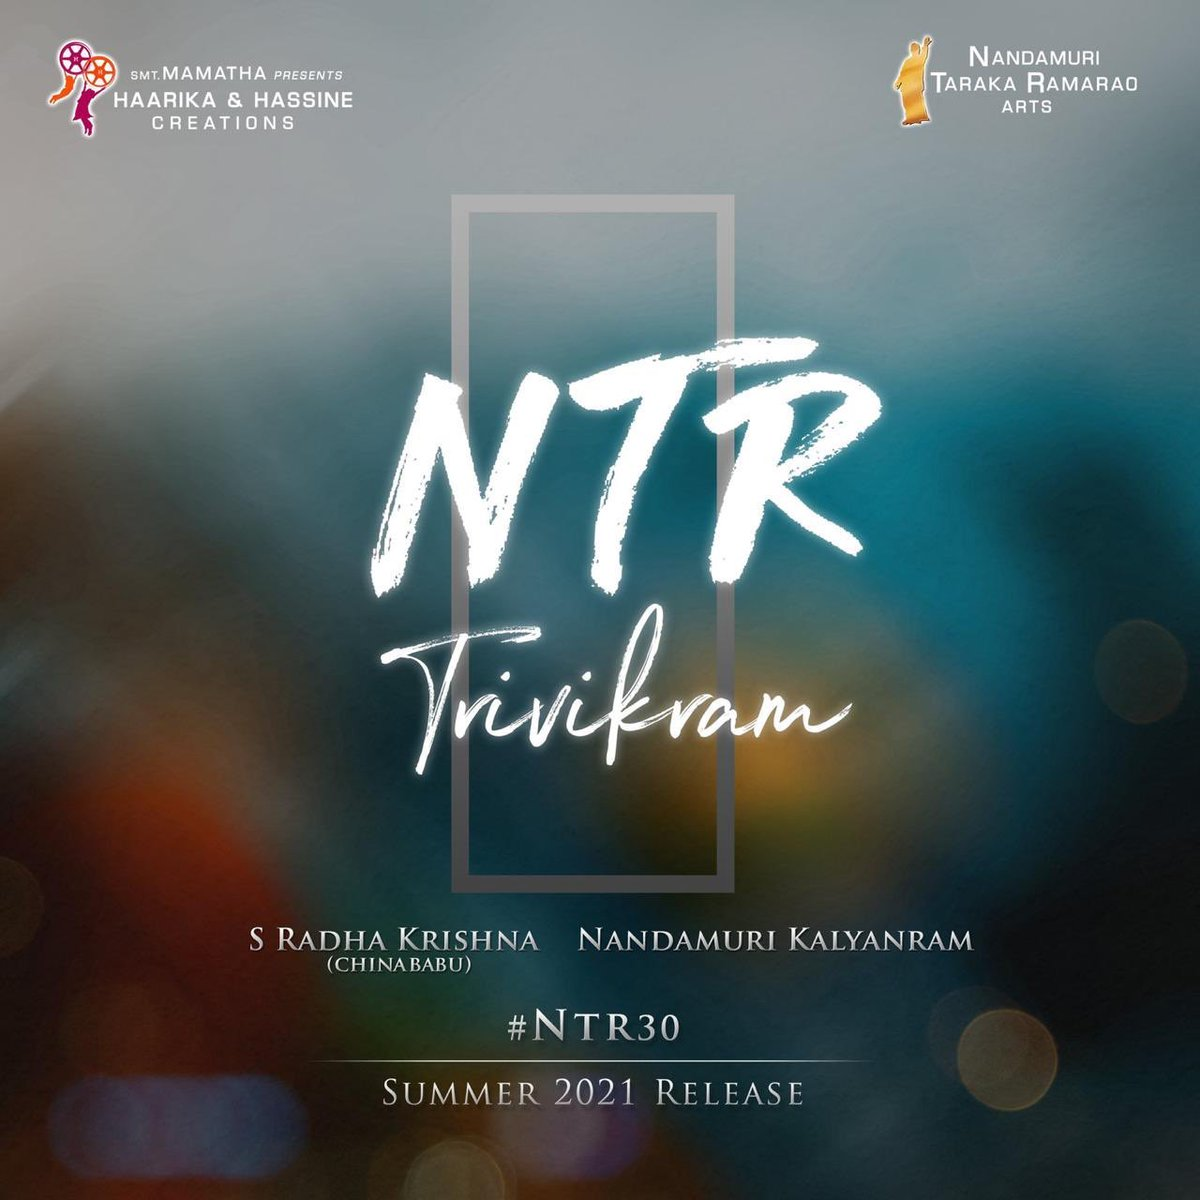 #NTR30 Summer 2021 is going to be HOT!